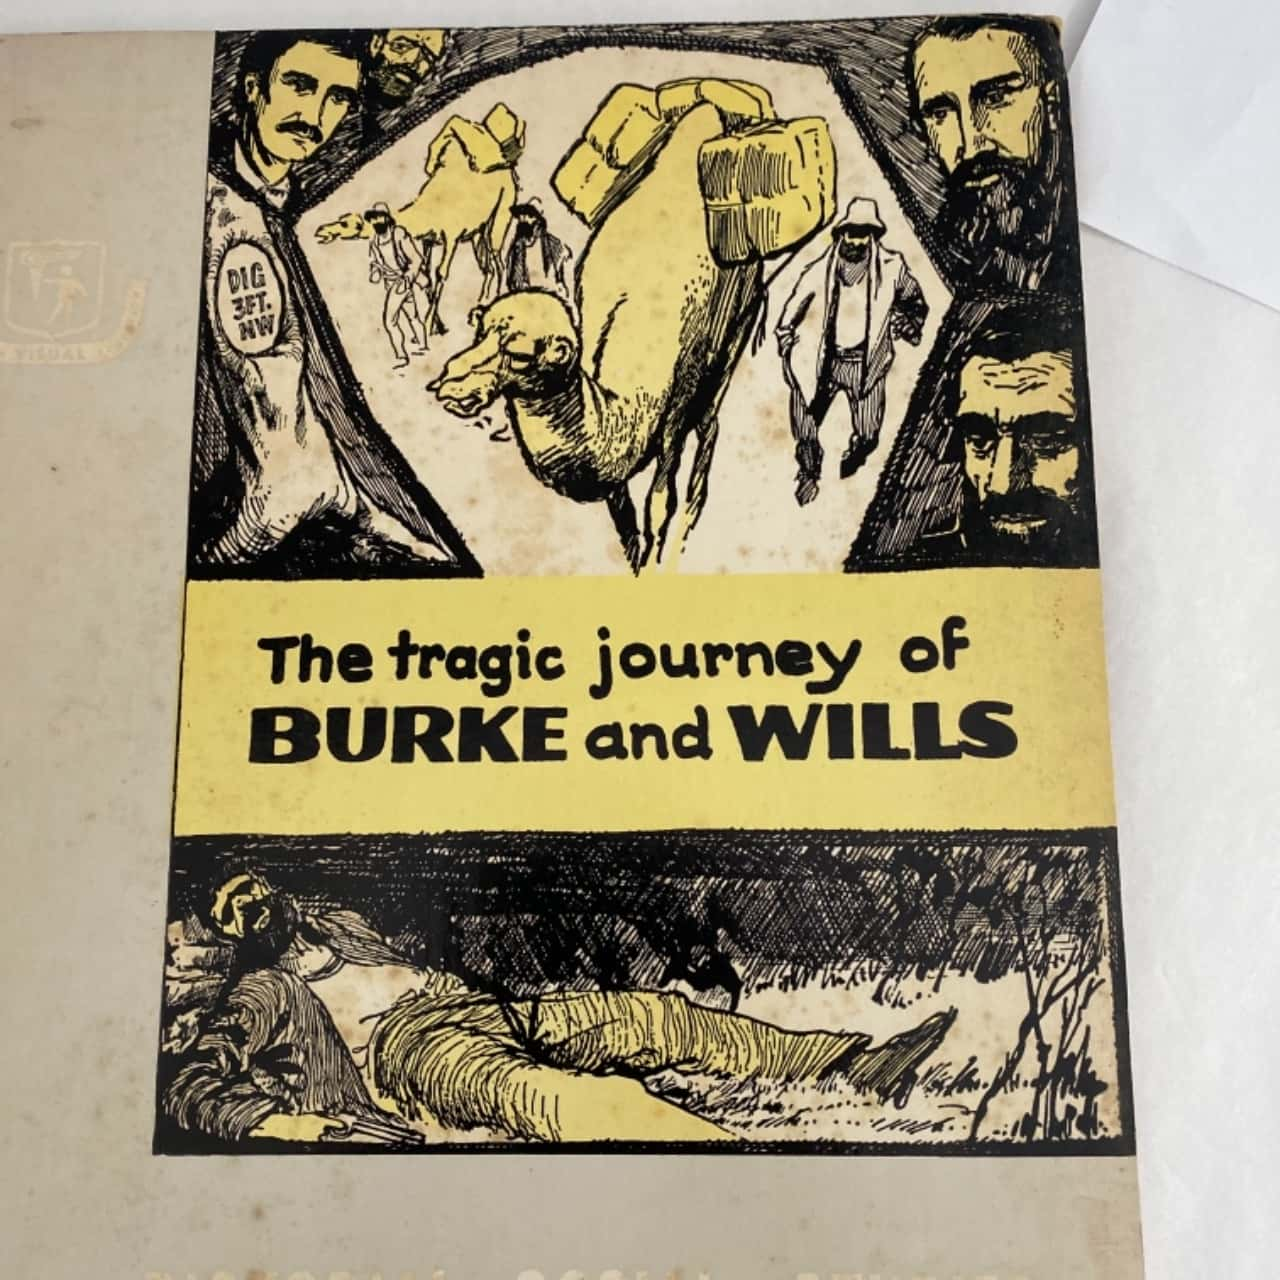 The tragic journey of Burke and Willis